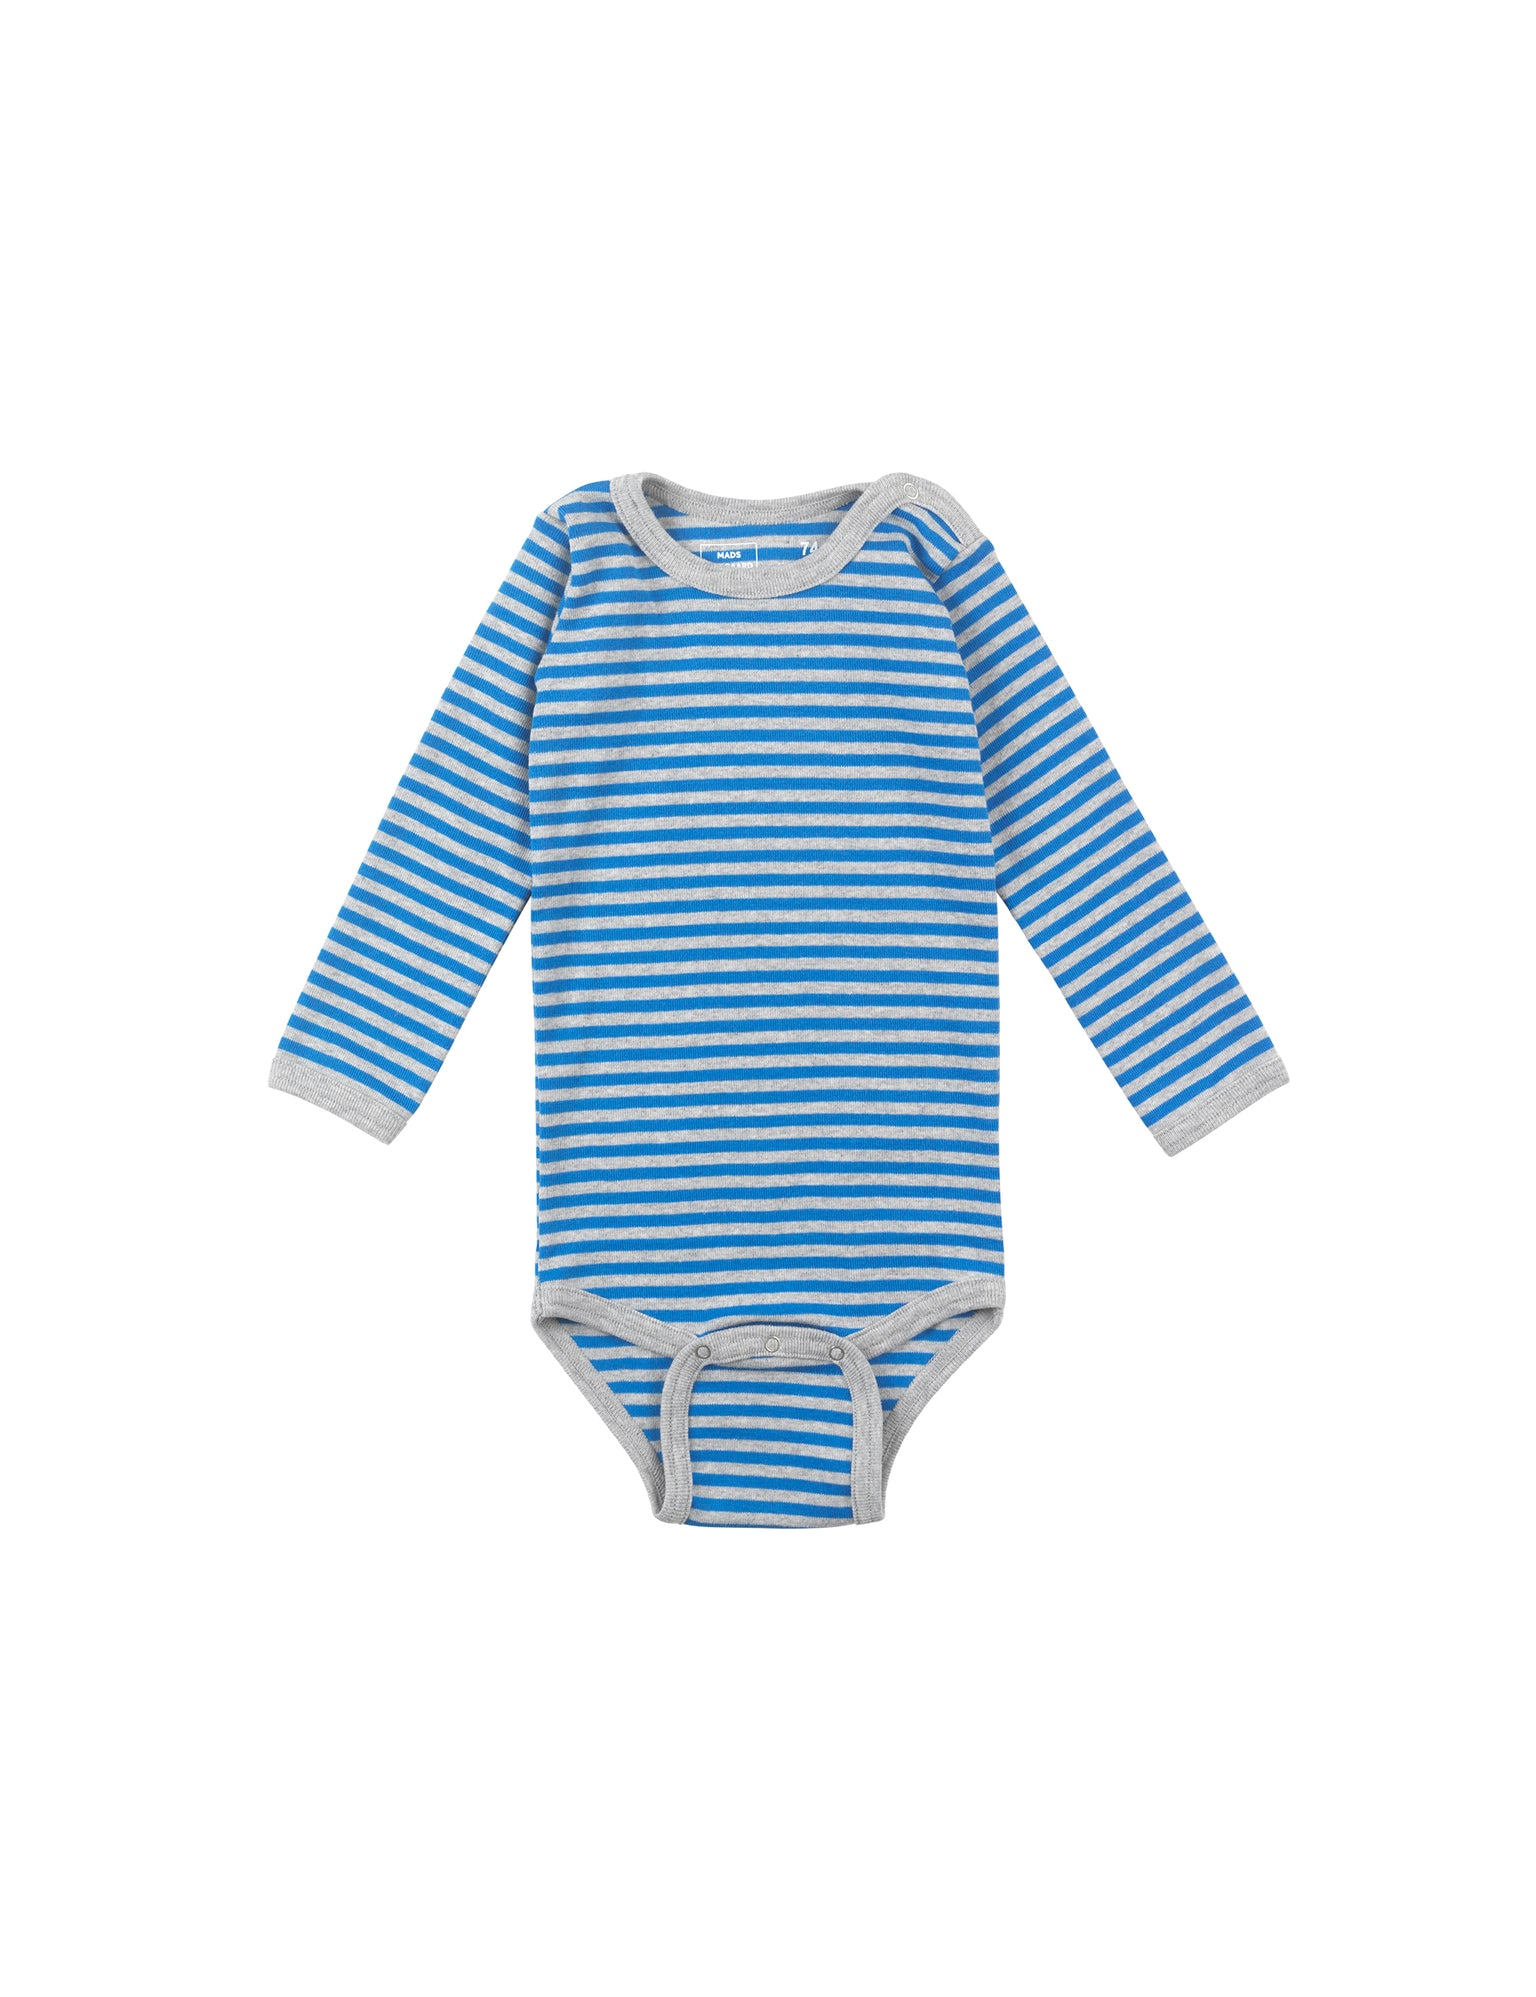 Duo Rib Body, Sky/Perla Grey